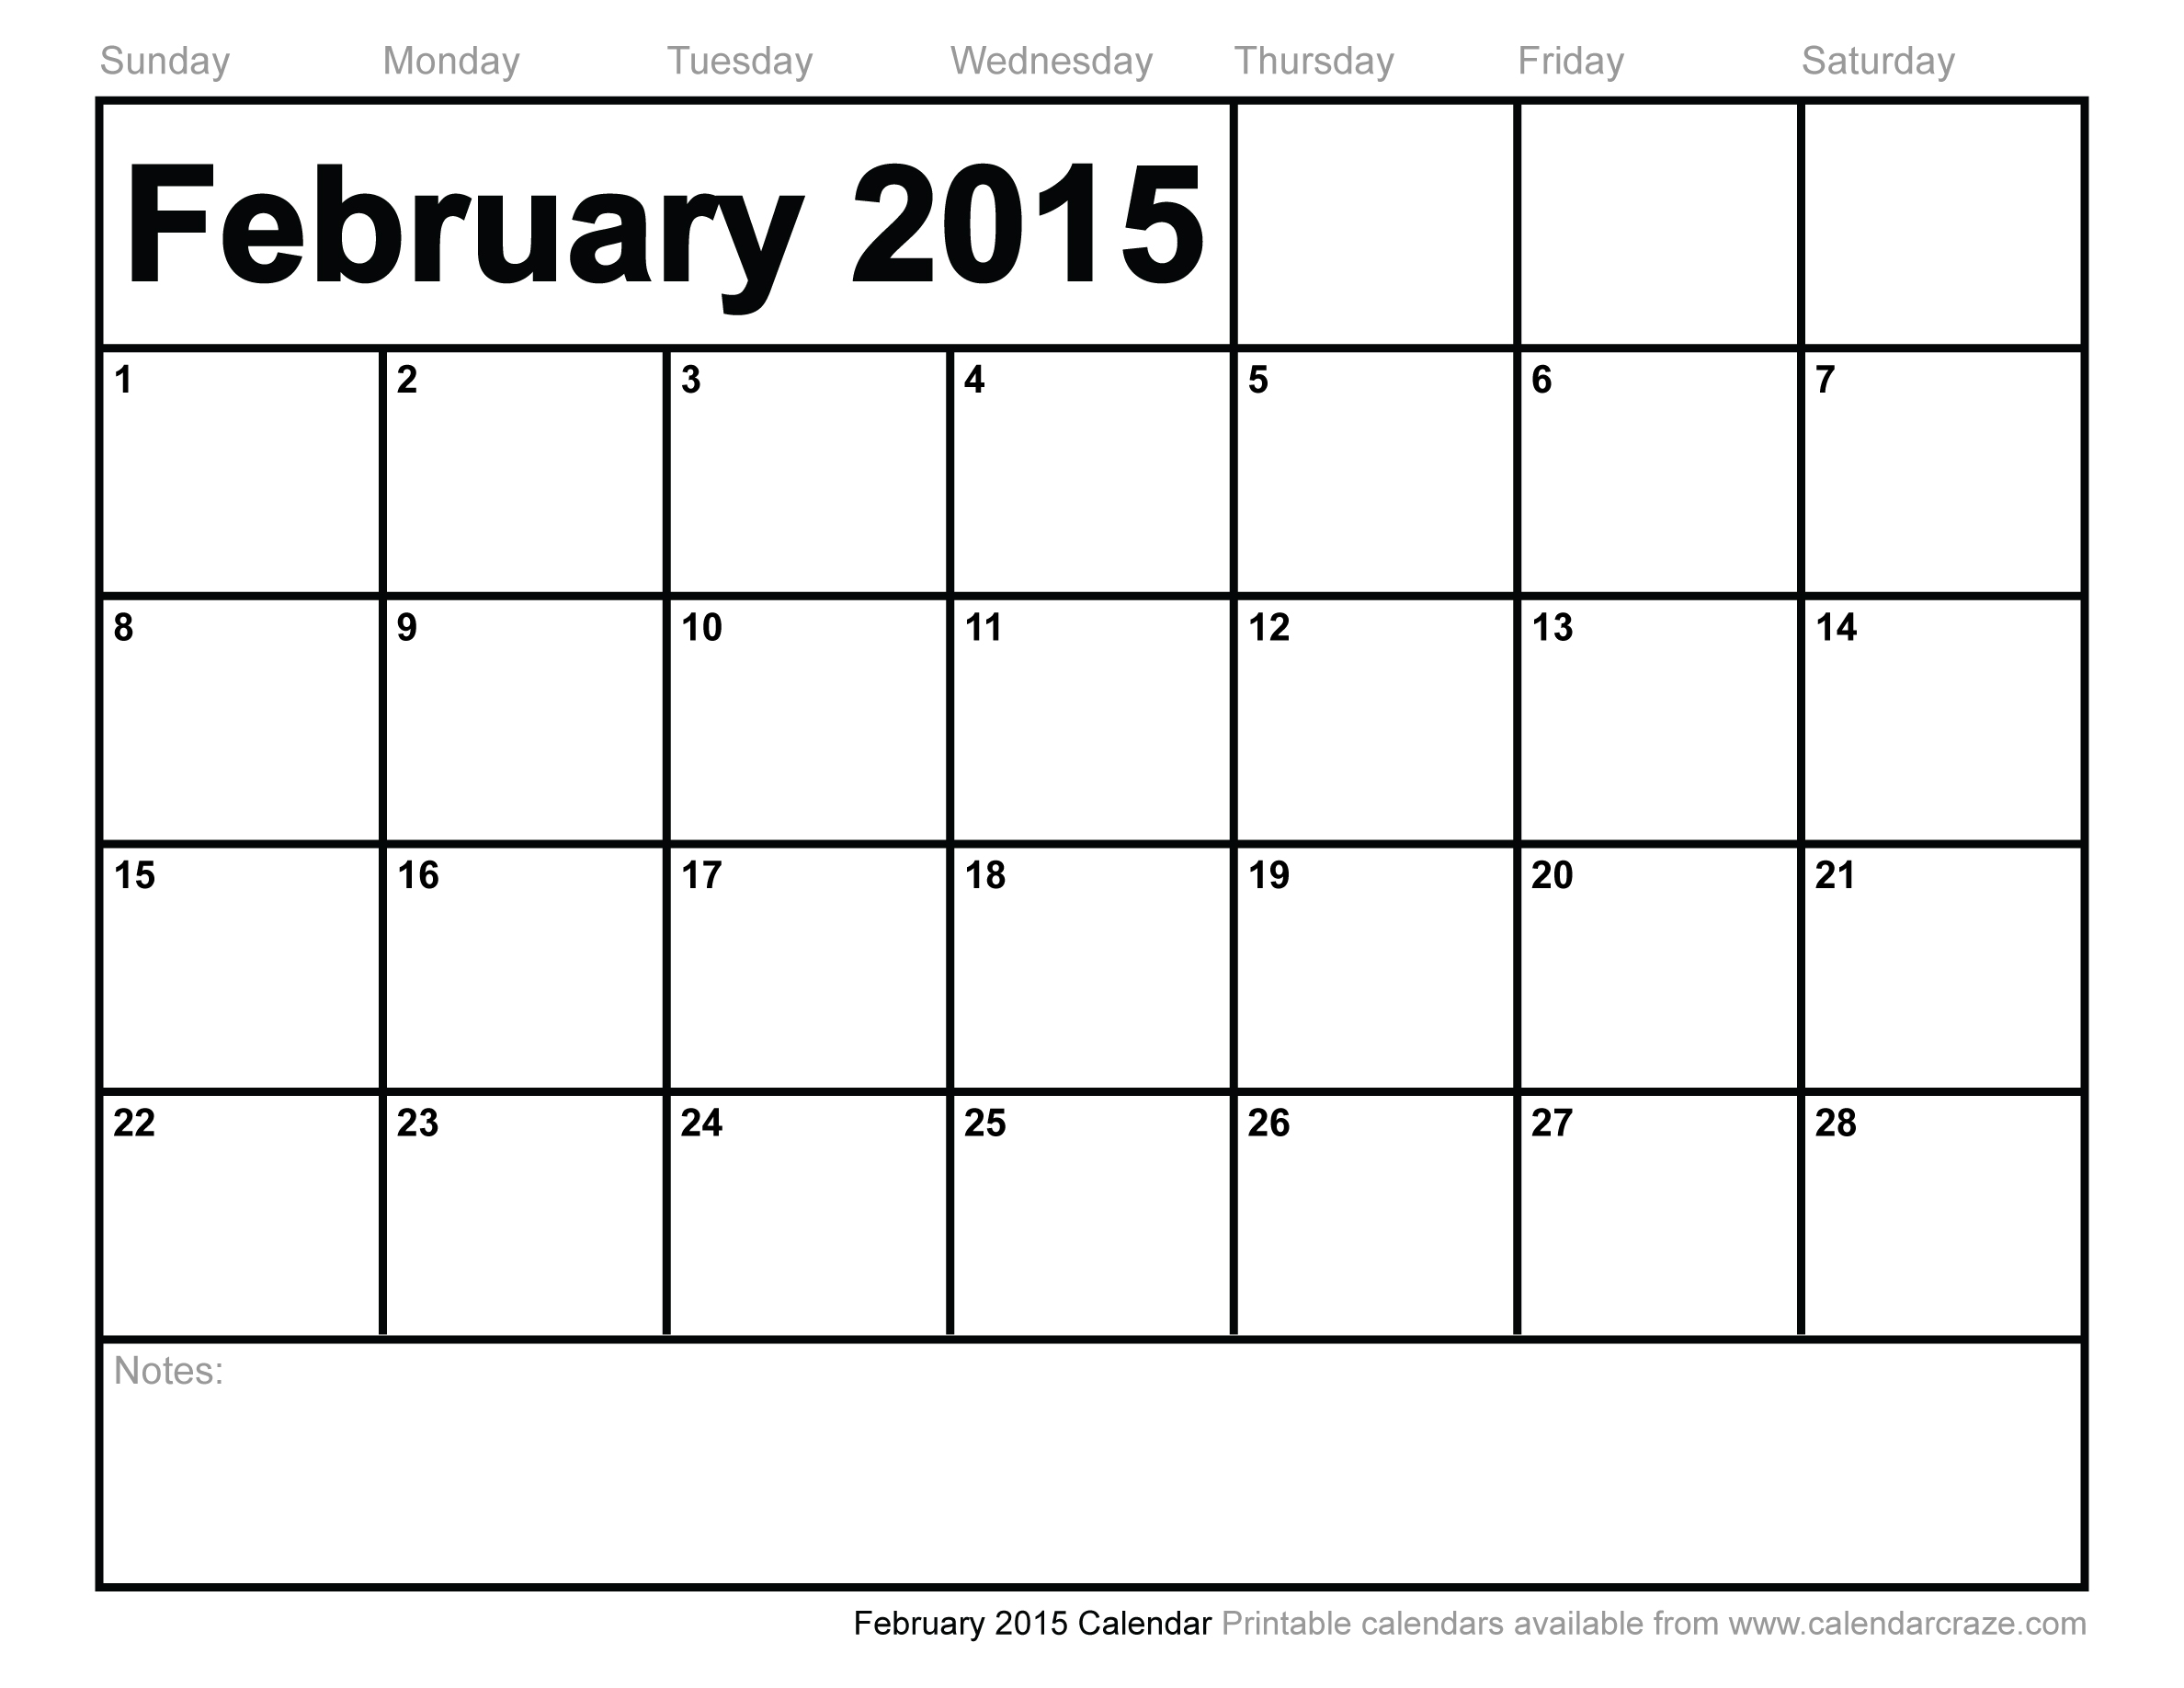 7 Images of February 2015 Calendar Printable